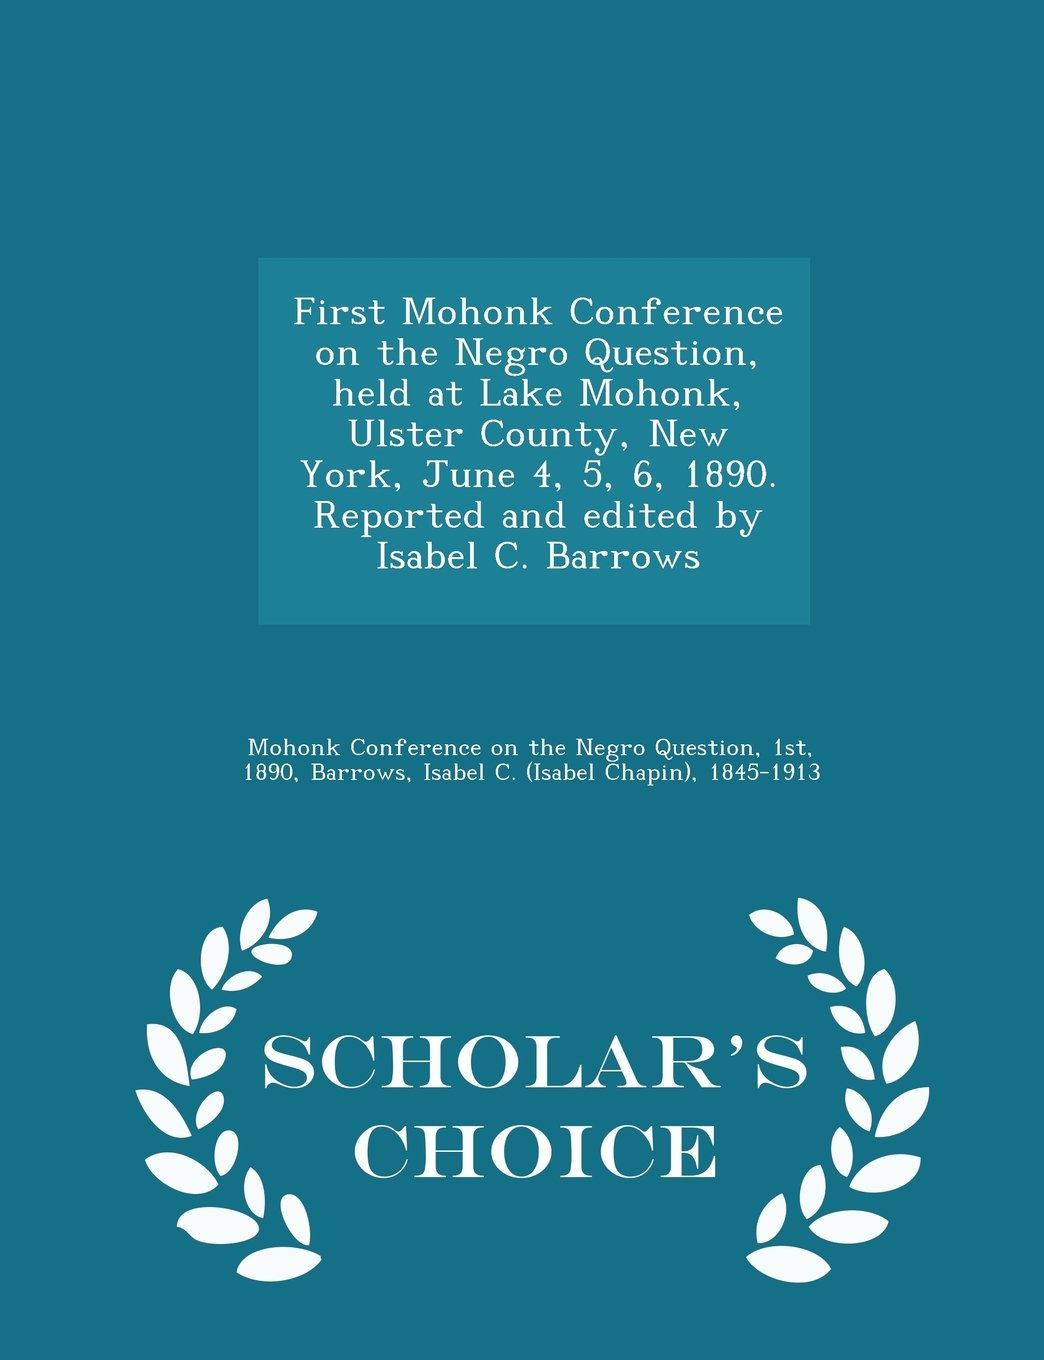 Download First Mohonk Conference on the Negro Question, held at Lake Mohonk, Ulster County, New York, June 4, 5, 6, 1890. Reported and edited by Isabel C. Barrows - Scholar's Choice Edition pdf